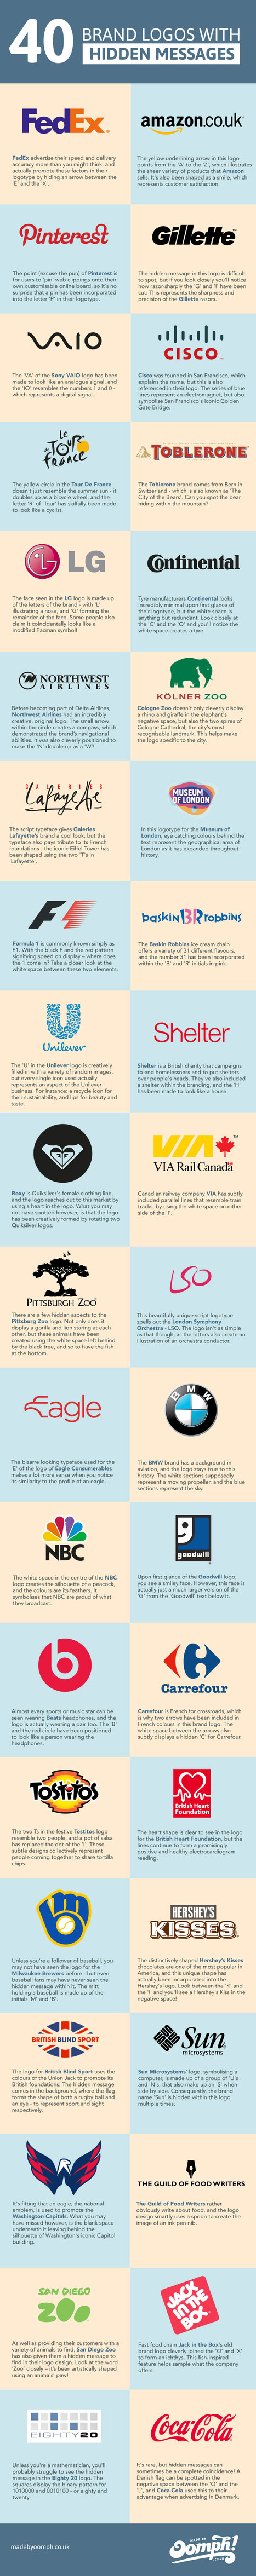 Infographic: 40 brand logos with hidden messages | Social Media | Scoop.it